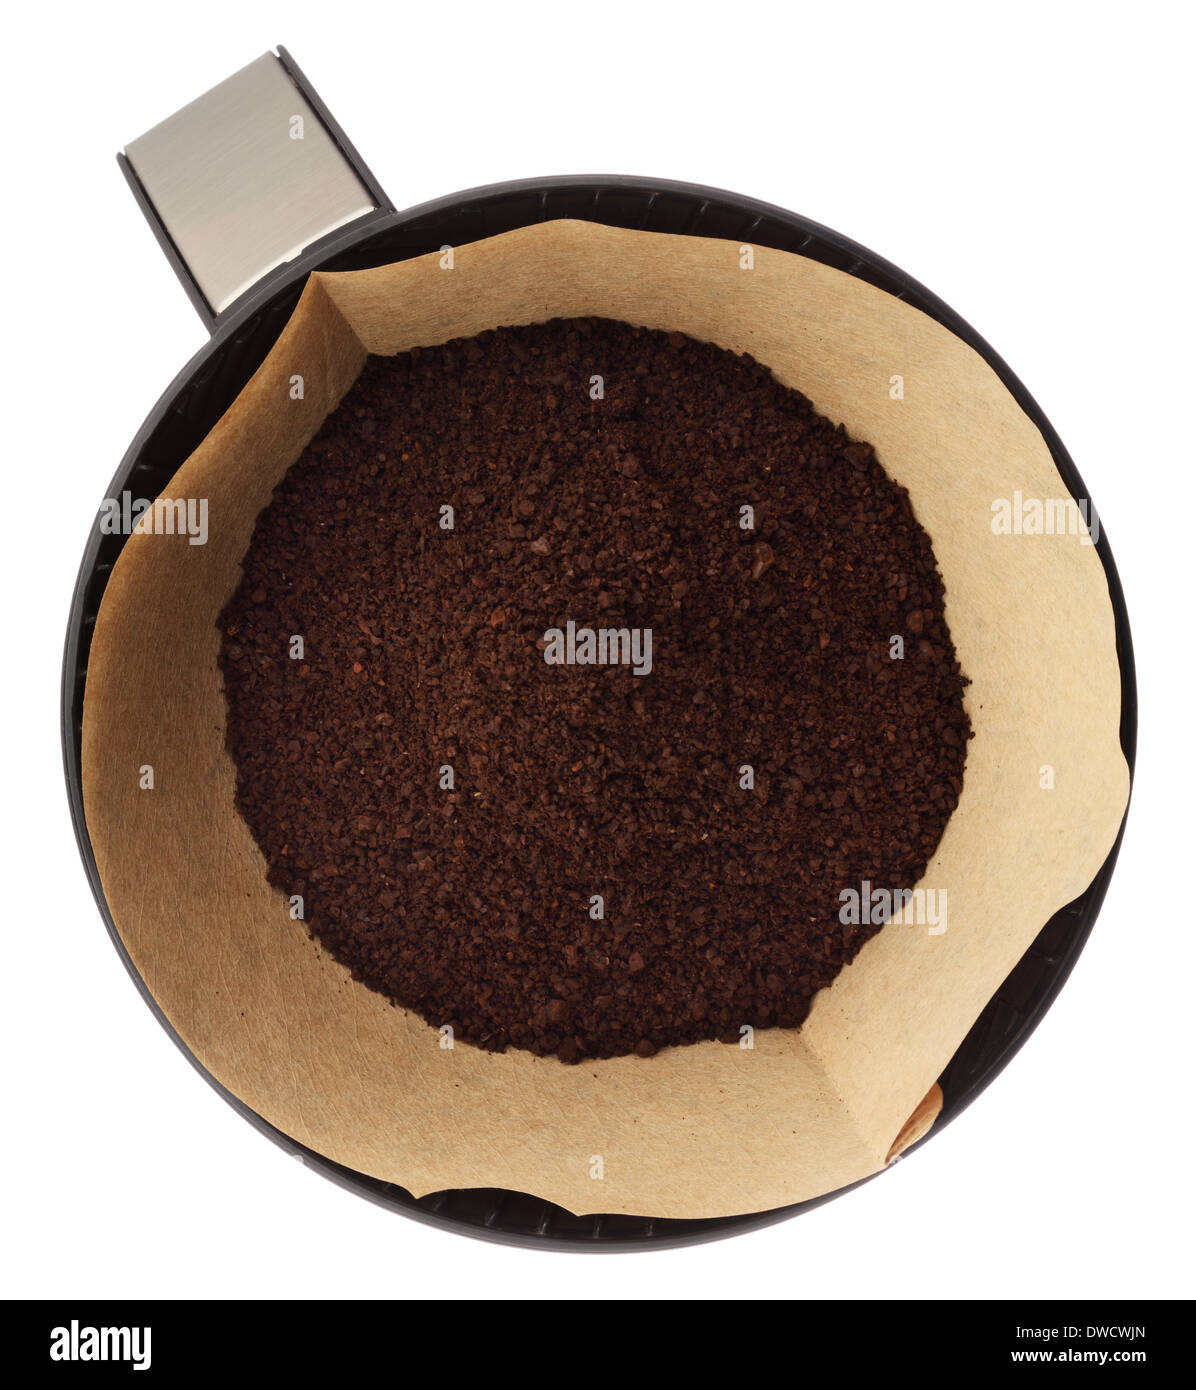 Ground coffee in filter holder isolated on white background overhead view Stock Photo